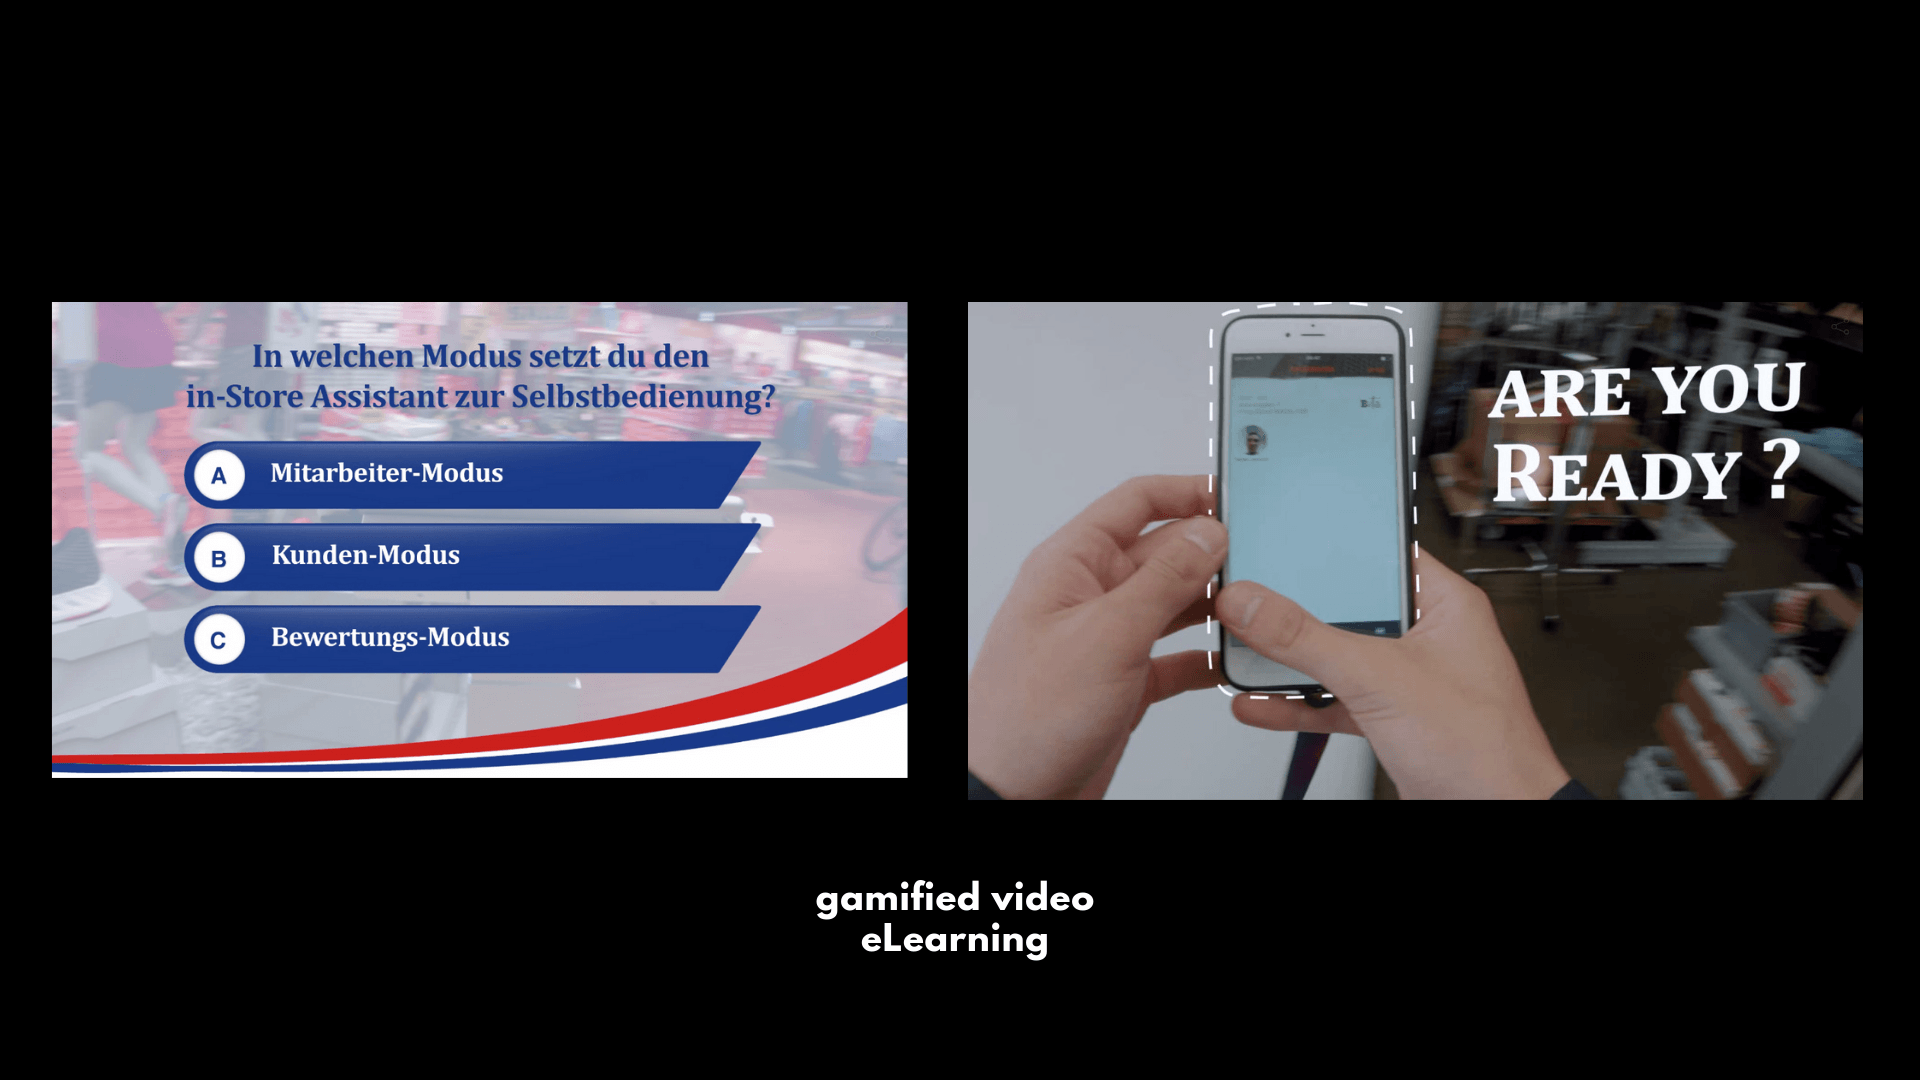 gamified video elearning